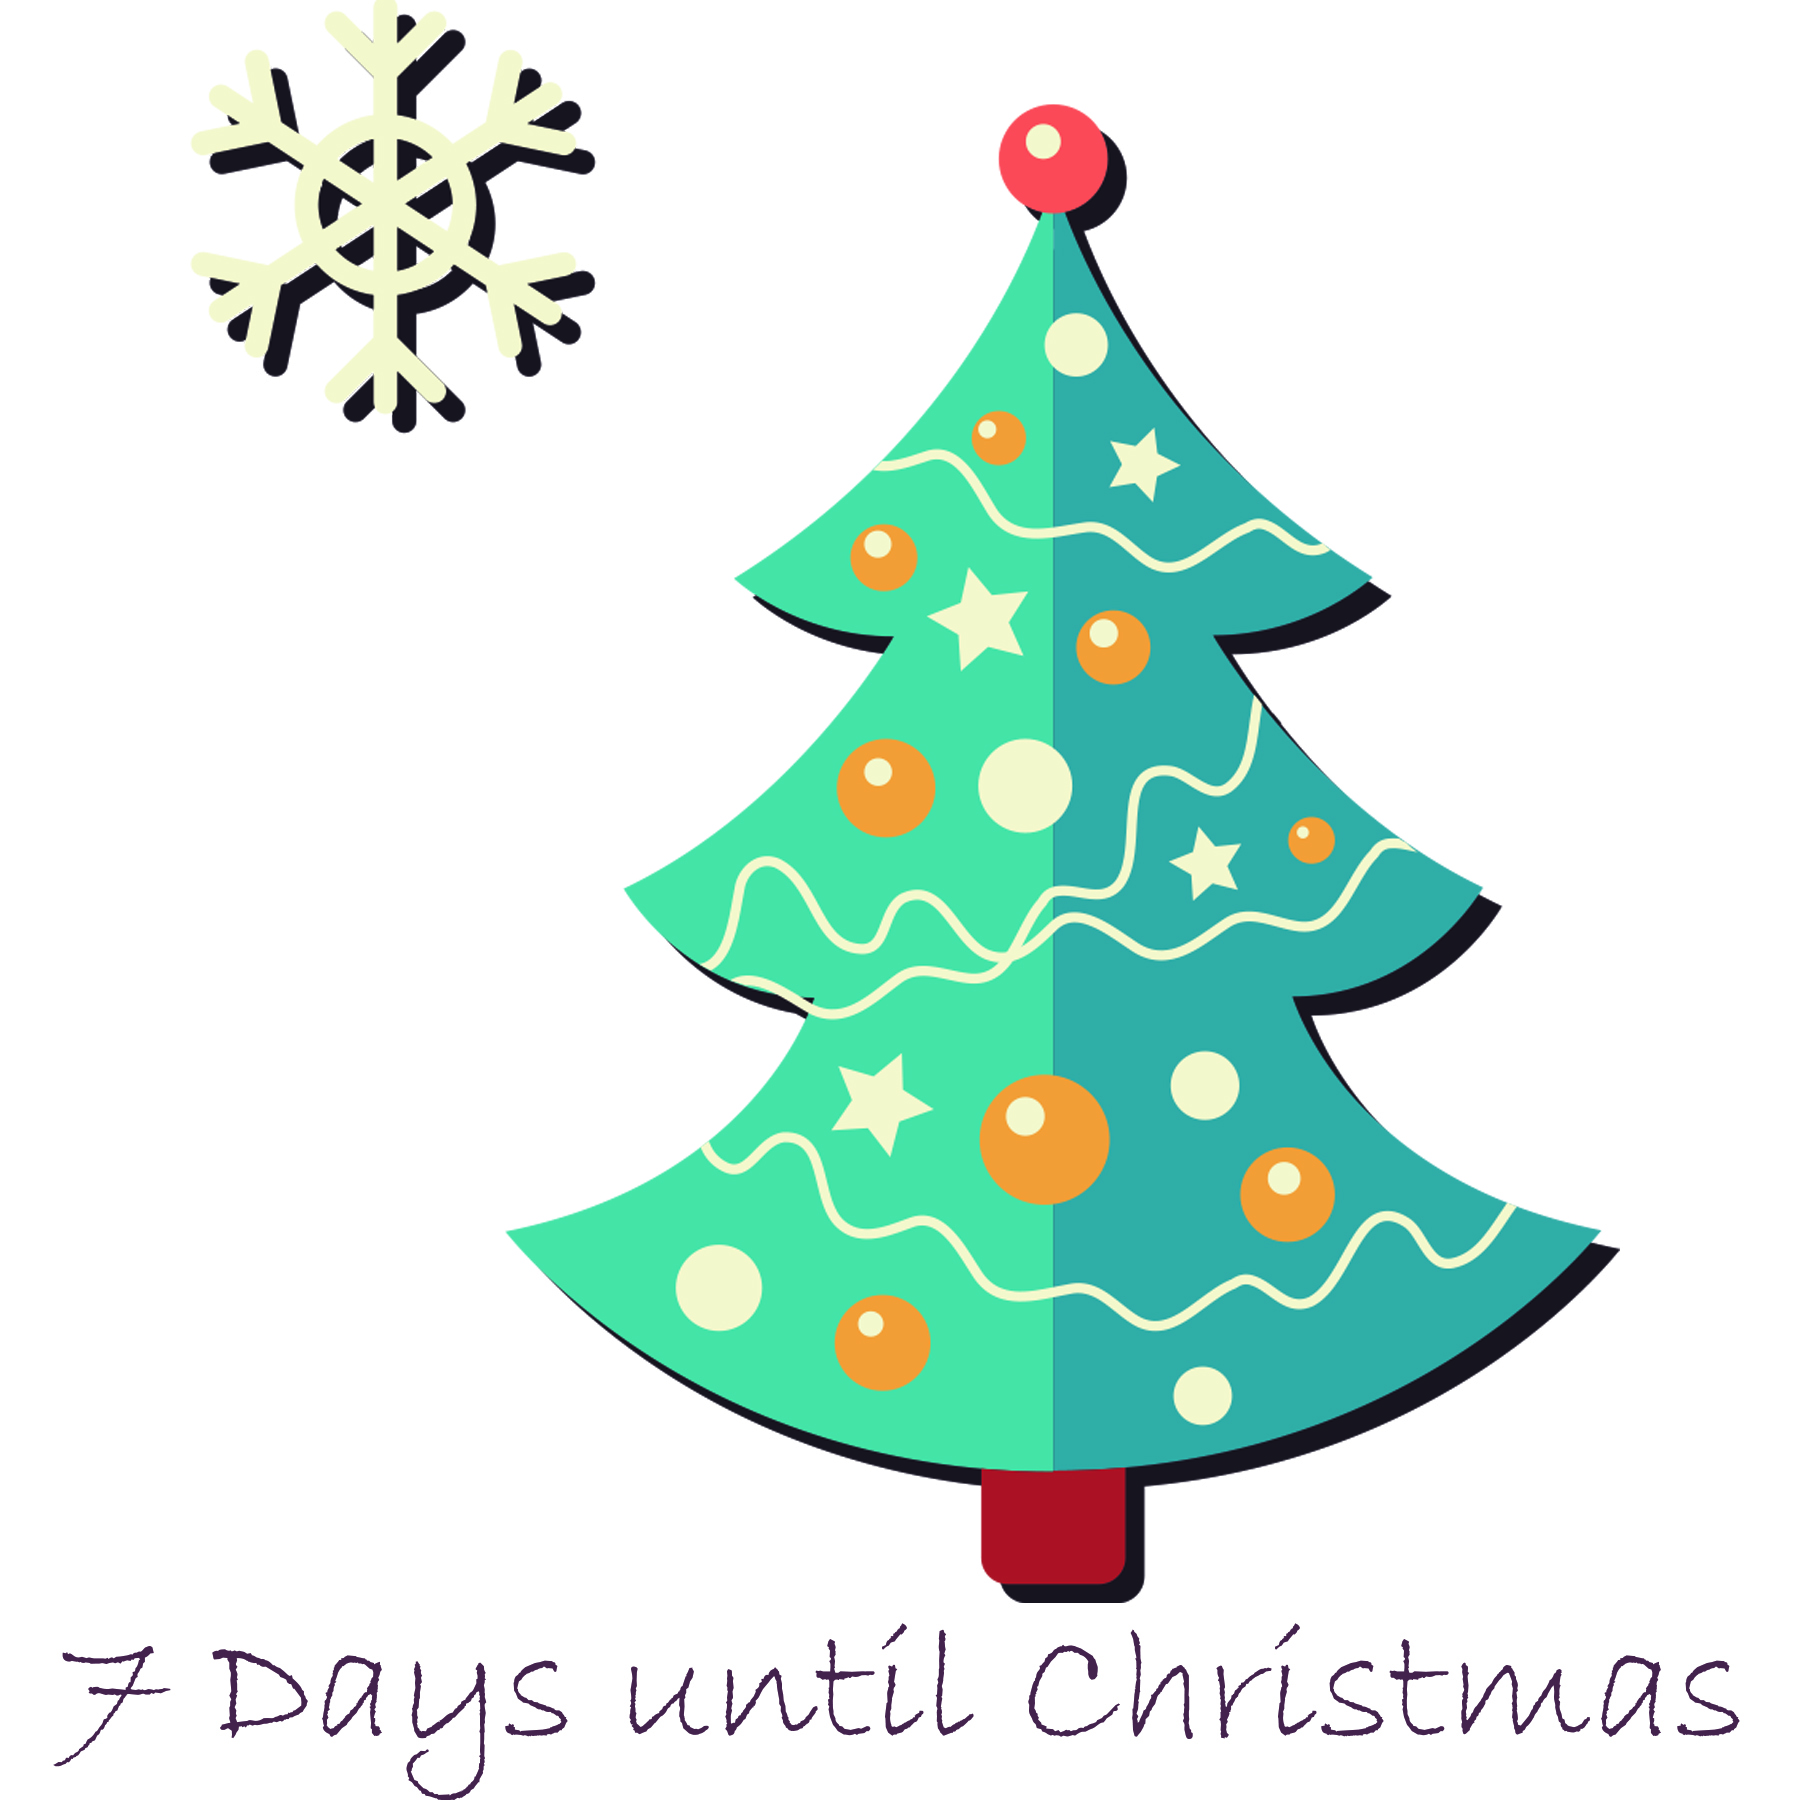 Days Until Christmas.7 Days Until Christmas Aloha Overstock